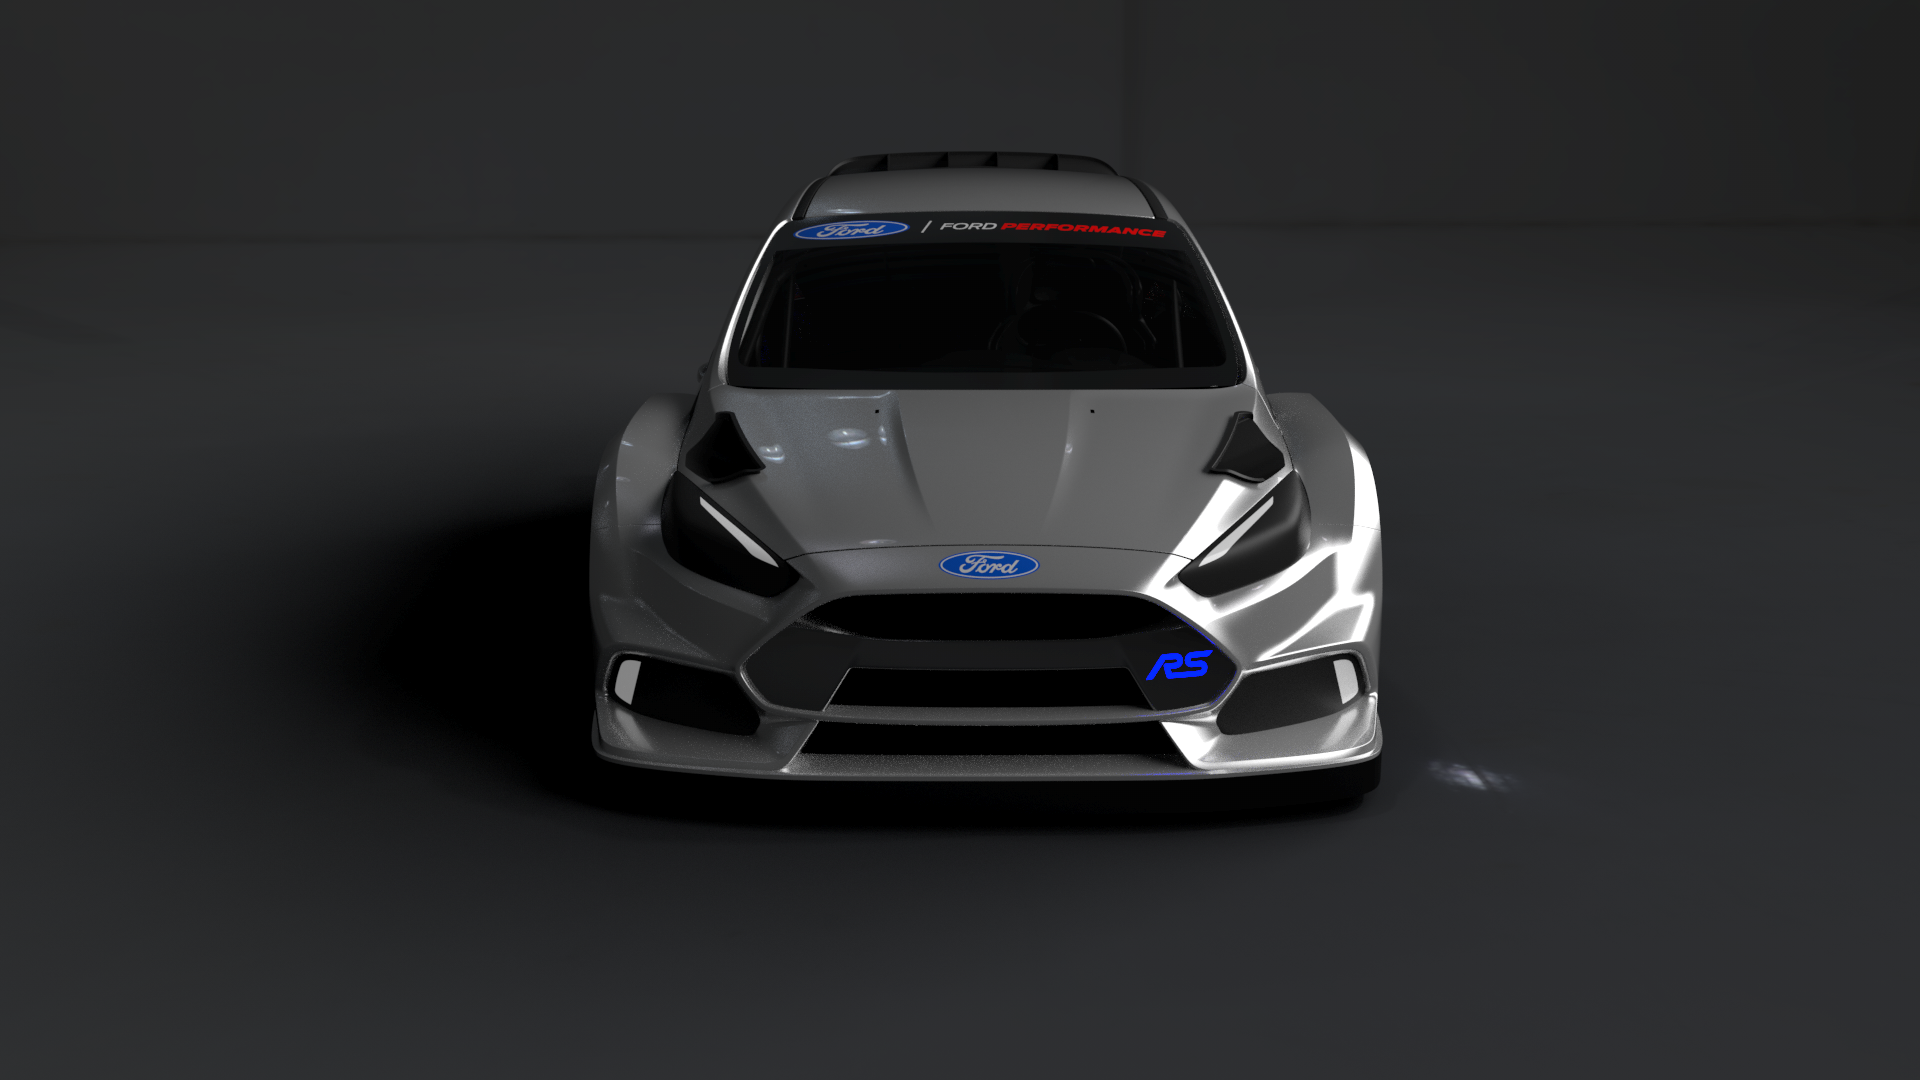 2016 Ford Focus RS Rallycross Car Confirmed, Here Are the Specs - autoevolution